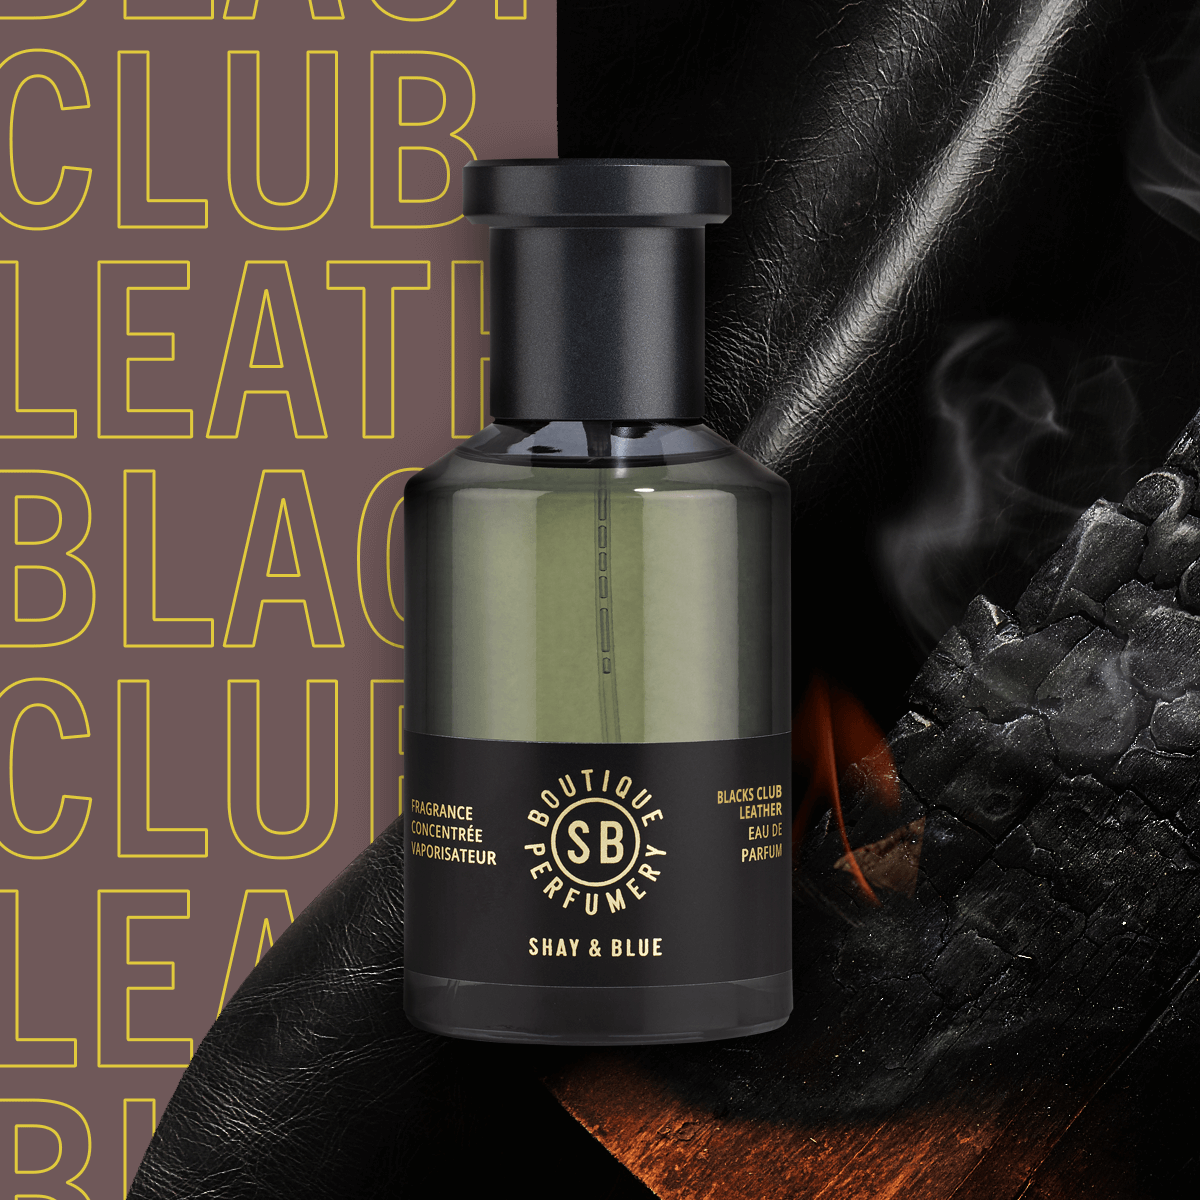 Blacks Club Leather Fragrance Concentrate 100ml | Rich with the scent of English leather, fire wood and a smooth brandy. | Clean All Gender Fragrance | Shay & Blue